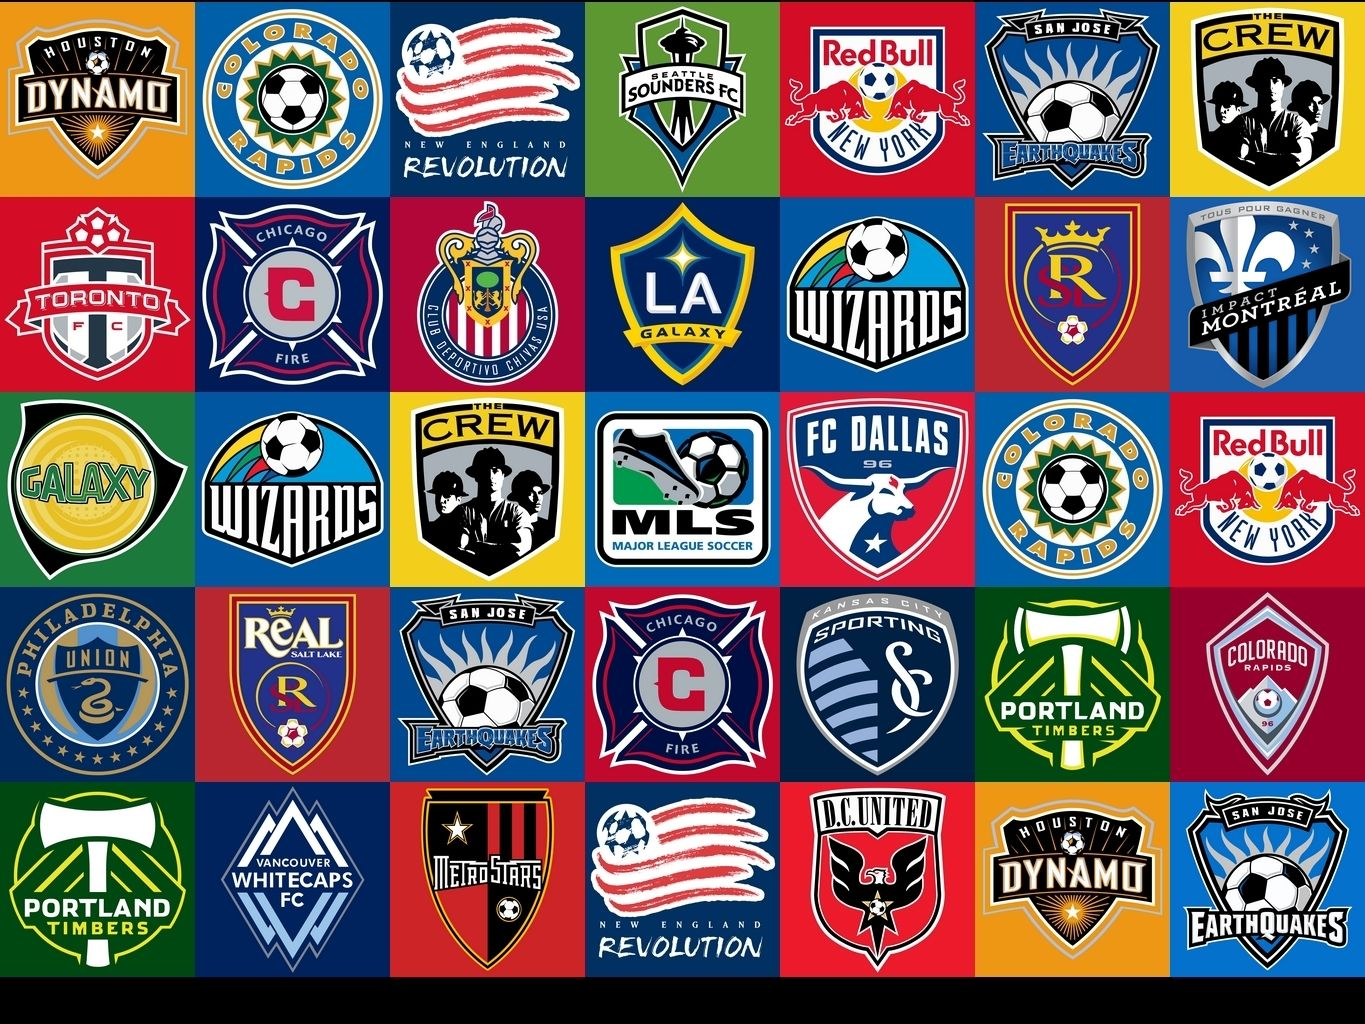 fifa teams logo mls soccer 18 teams 42 regular games per team schedule march to mls teams soccer logo major league soccer fifa teams logo mls soccer 18 teams